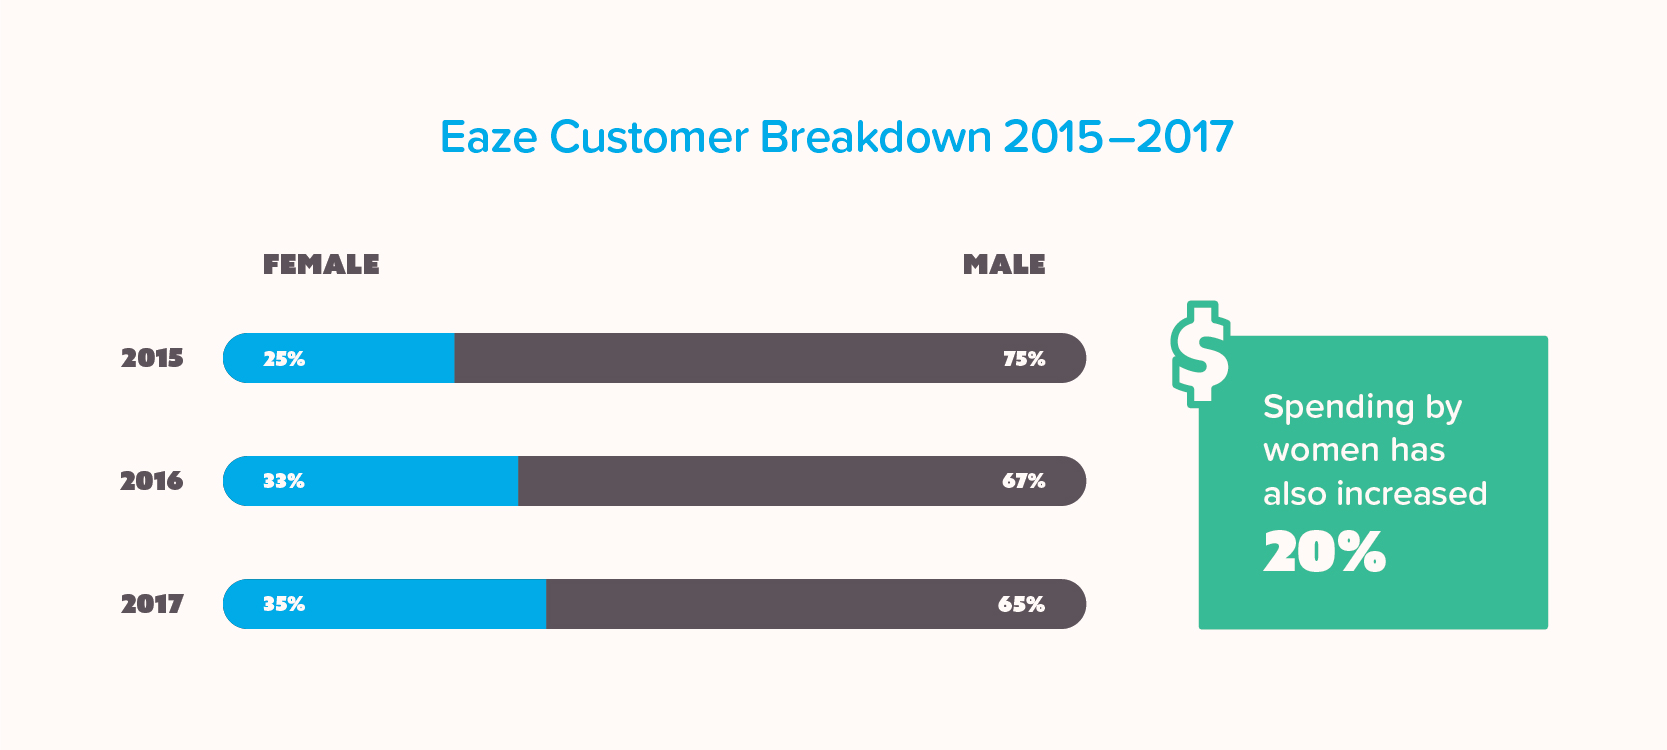 Infographic showing the Eaze customer breakdown from 2015-2017